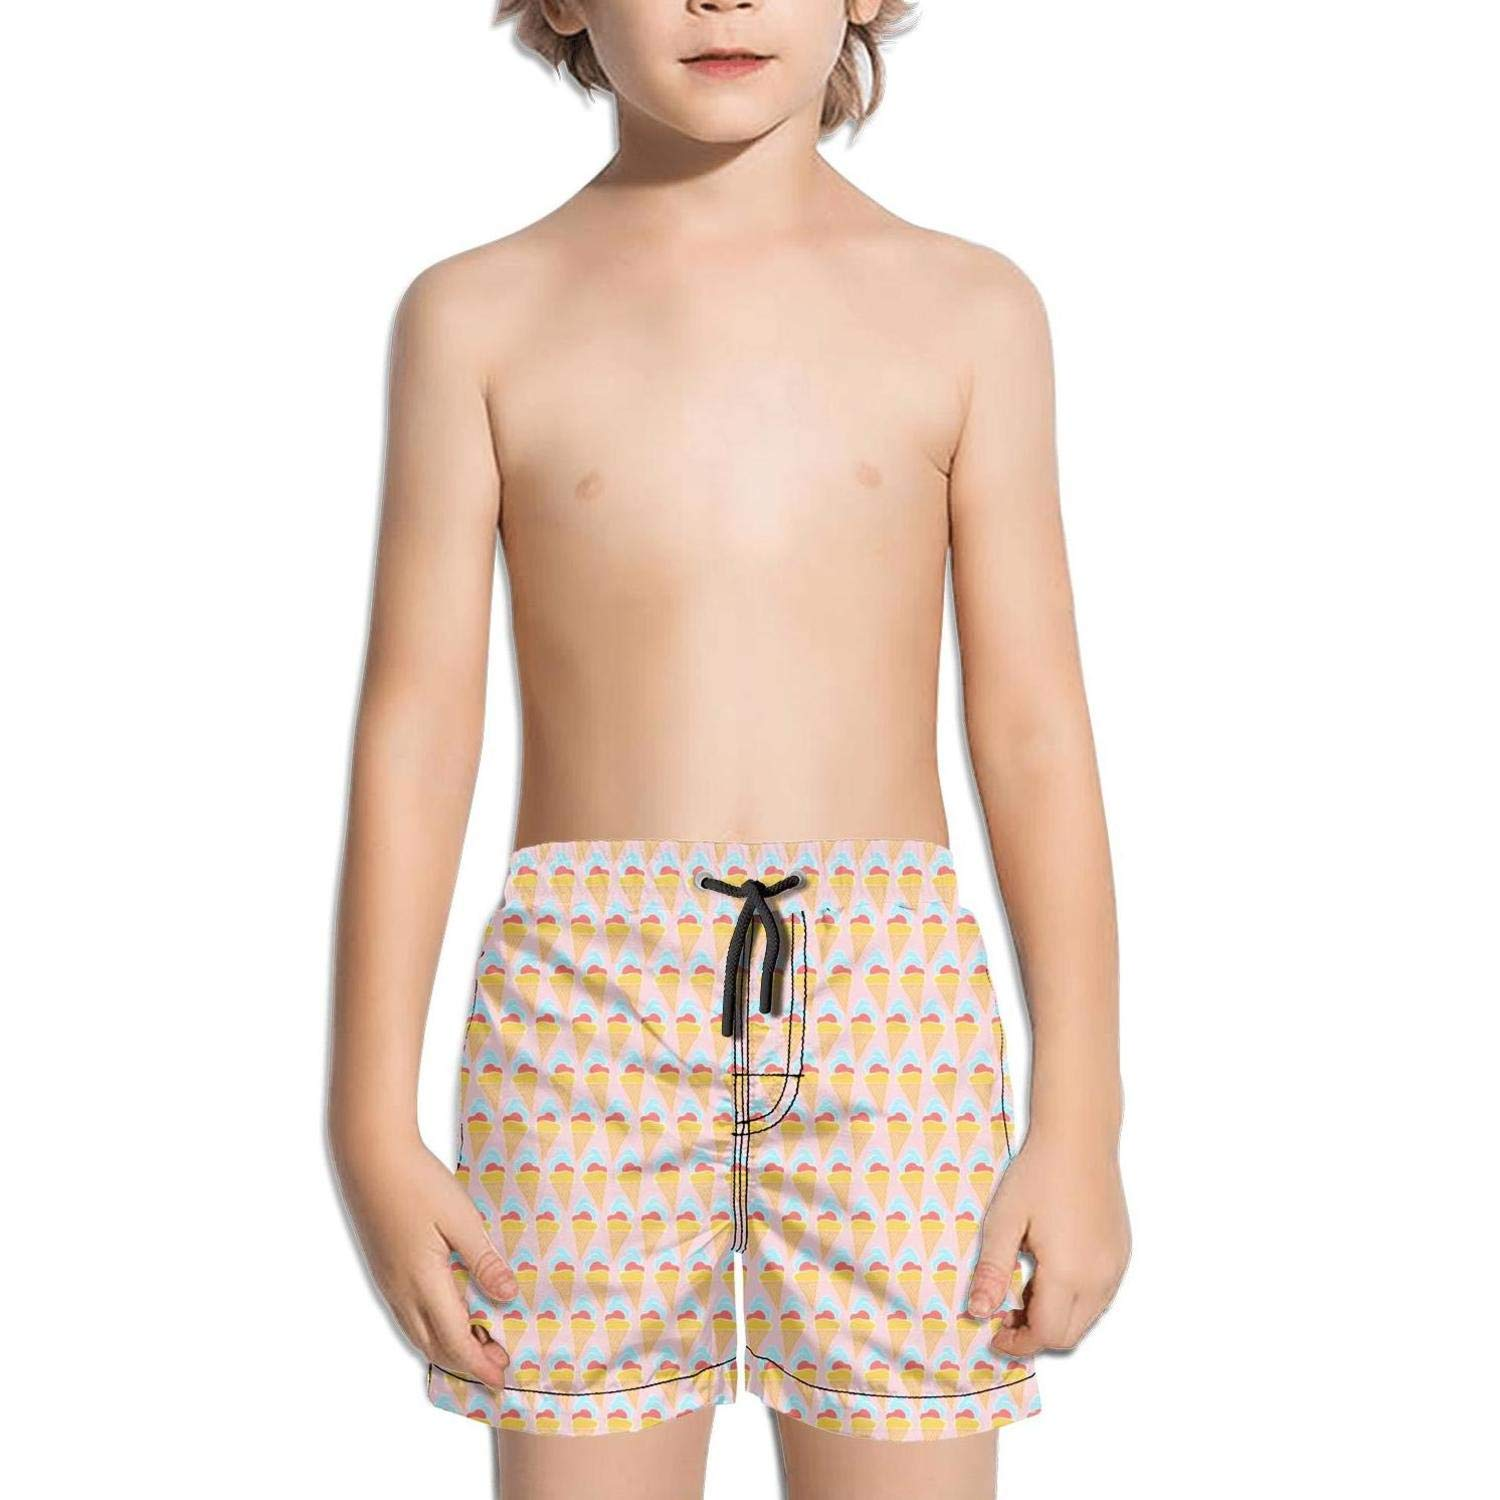 Ina Fers.Quick Dry Swim Trunks Love Ice Cream Gifts Summer Time Pink Shorts for Boys